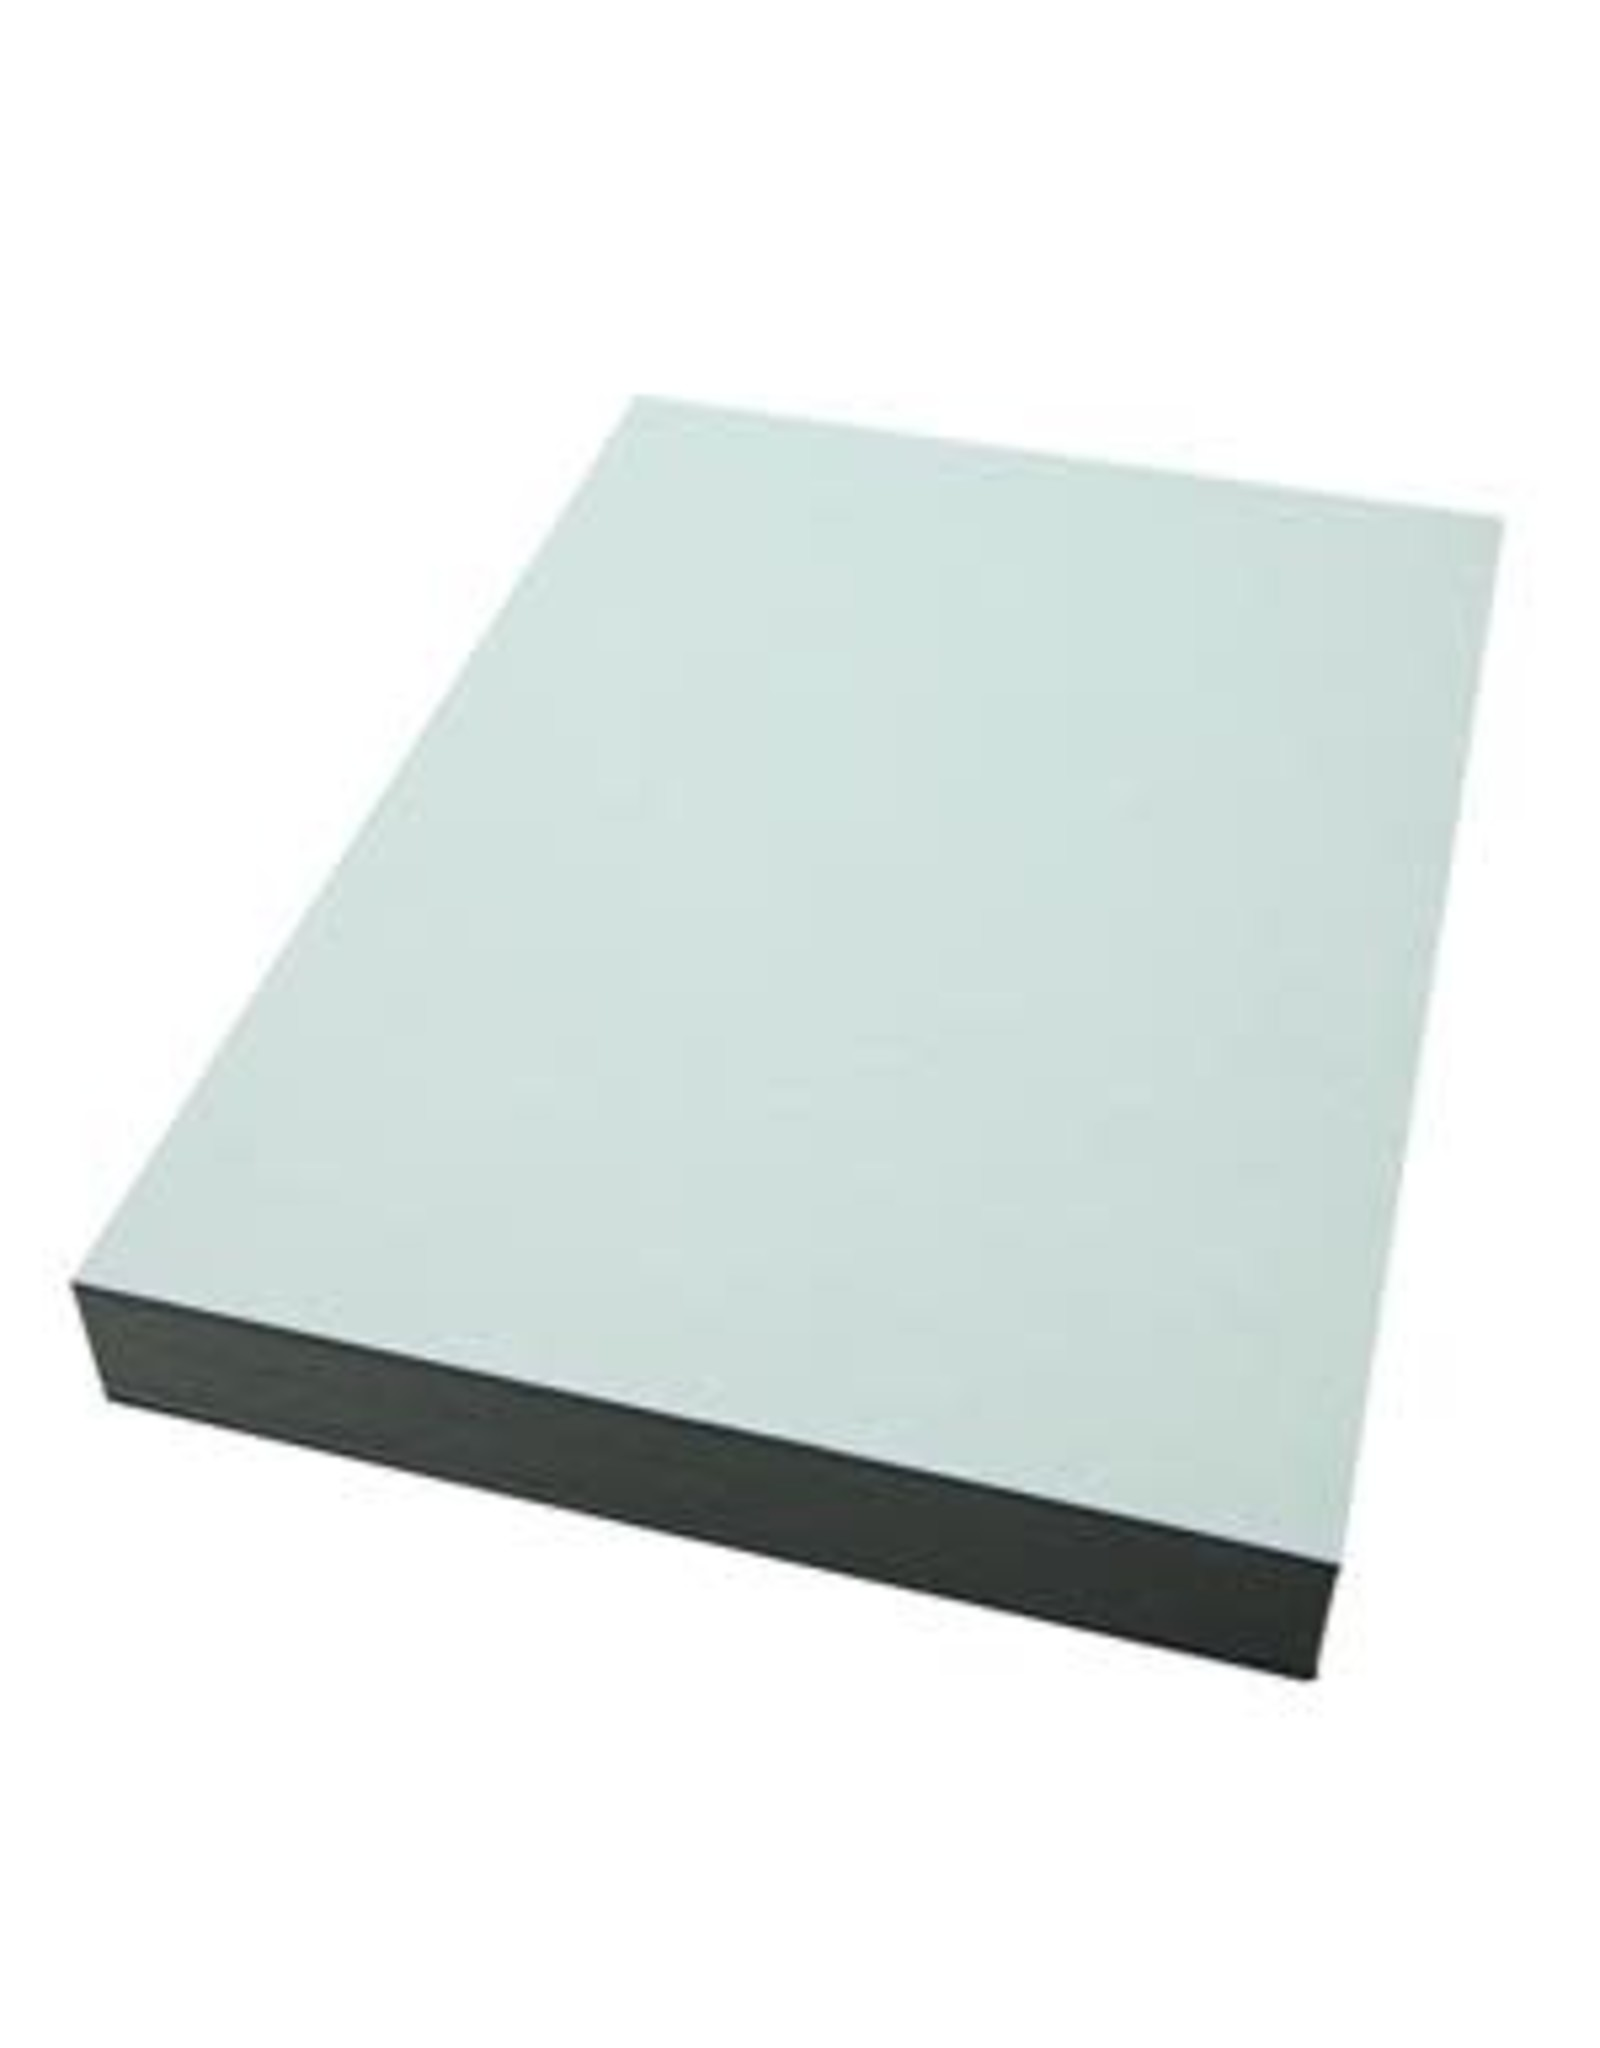 SANYO SIGYO Co Ltd KAMI NO MILLE FEUILLE NOTEBOOK GRAY